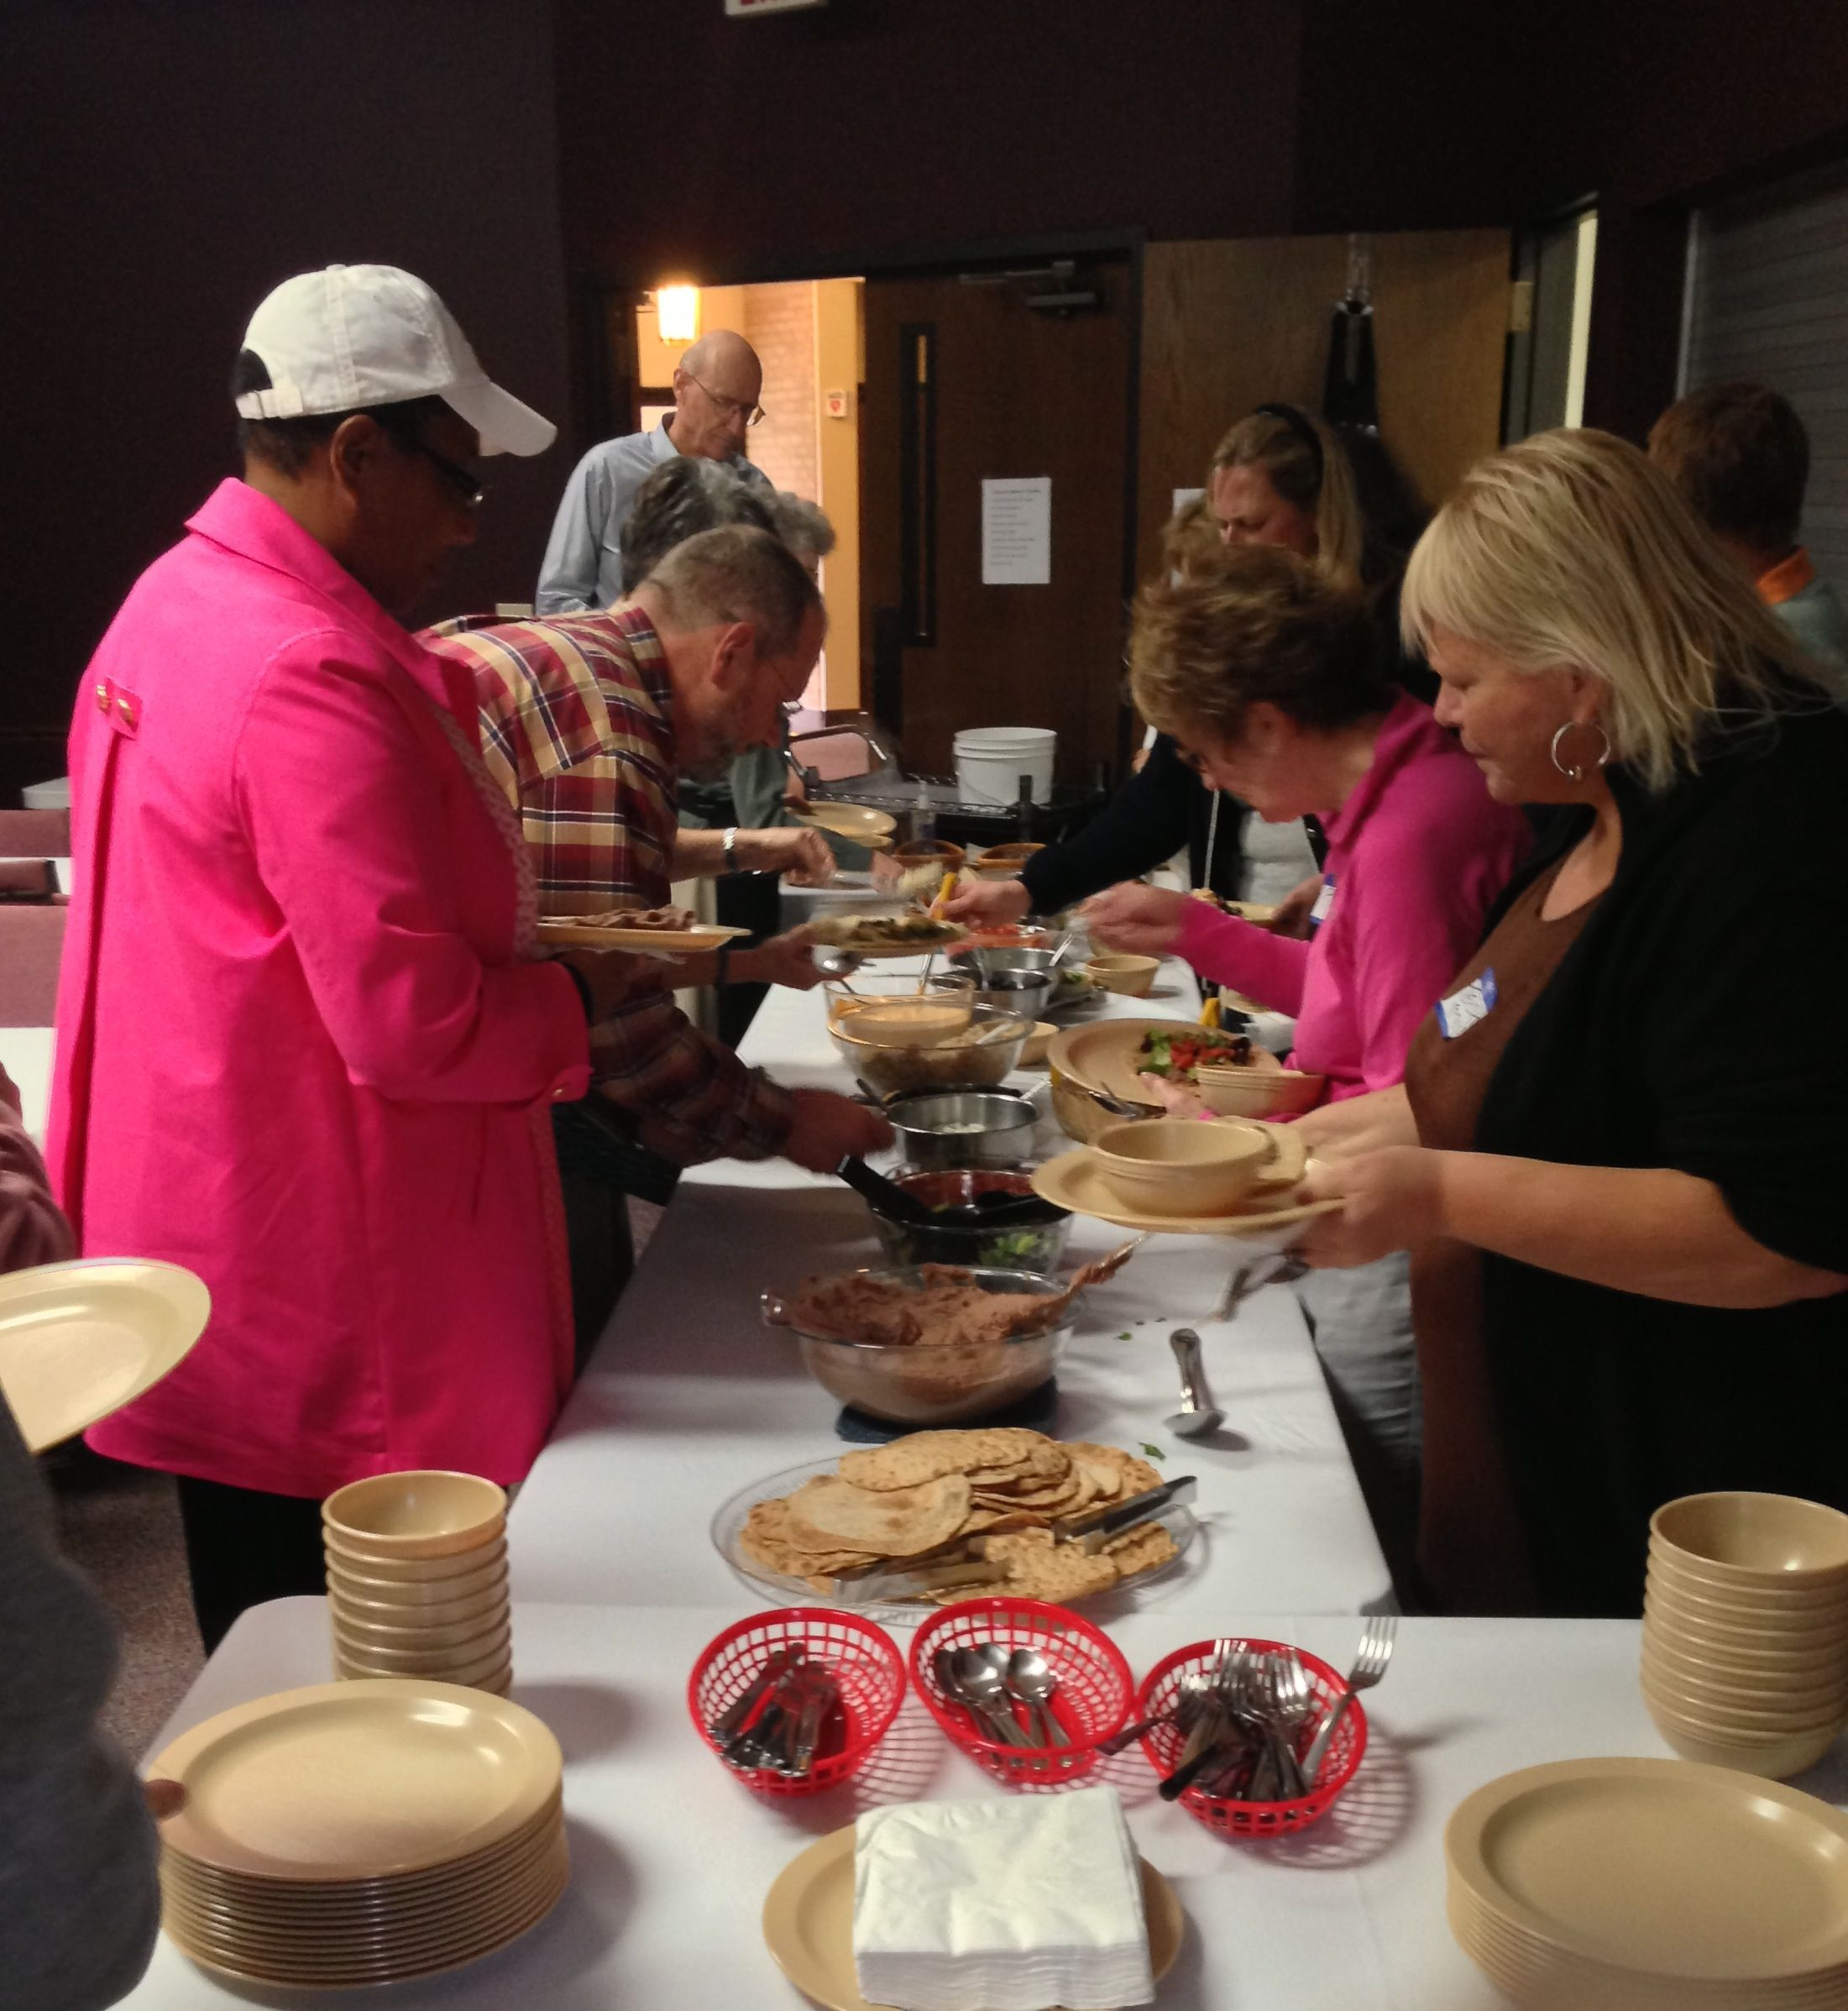 Guests-Getting-Food-at-Our-Five-Day-Health-Seminar-at-Lady-Lake-Florida-compressor